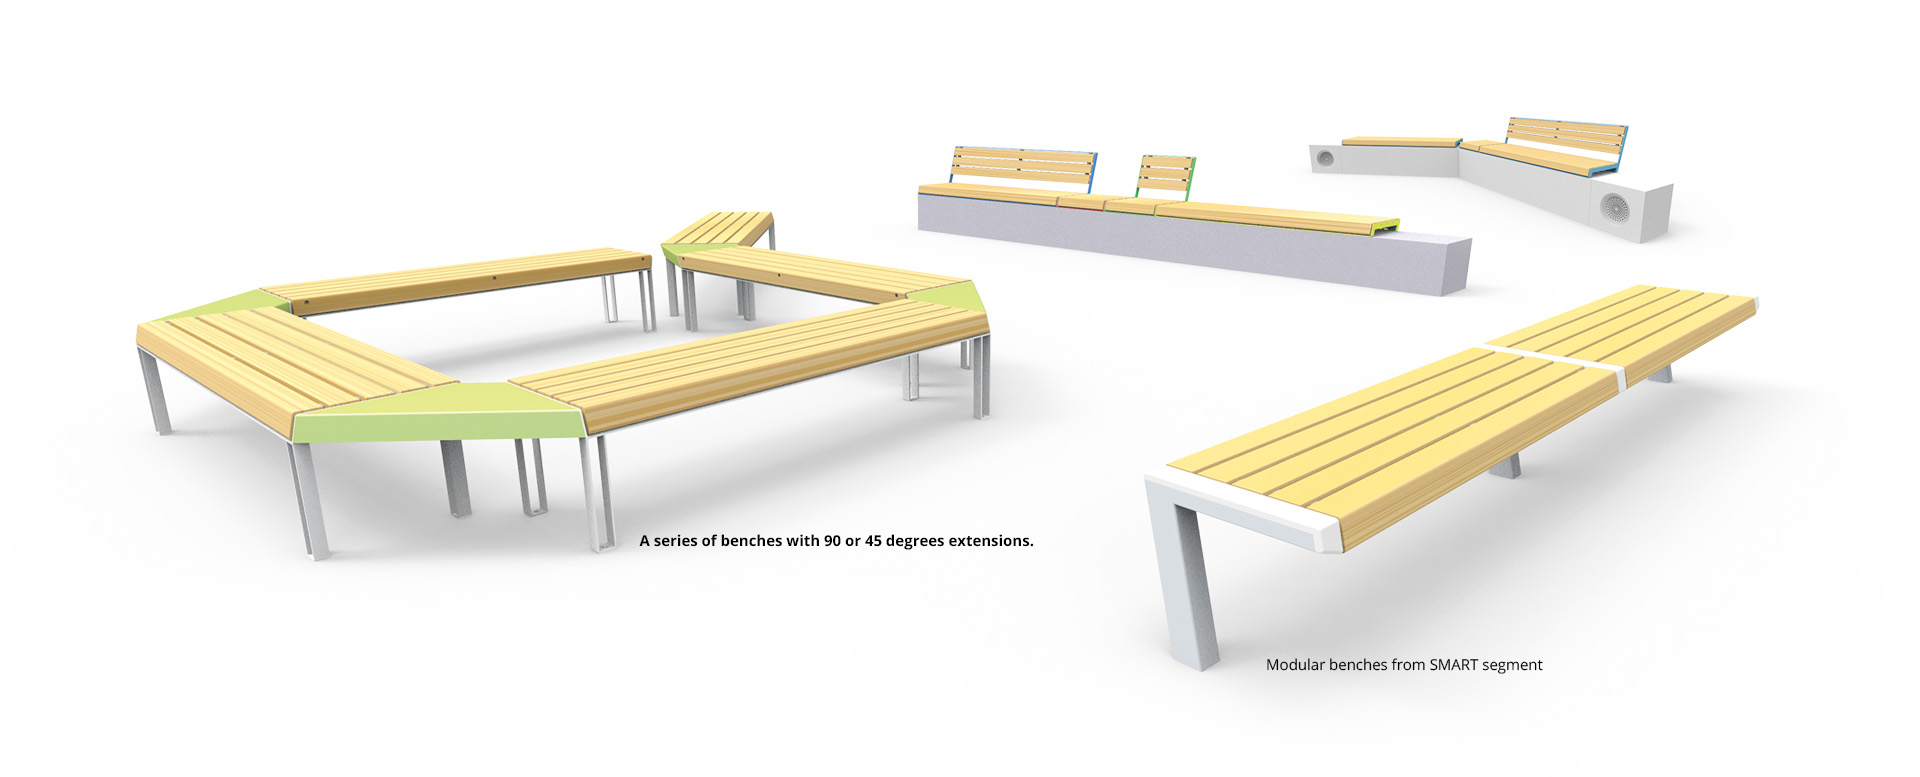 urban_furniture_modular_moment_aklih